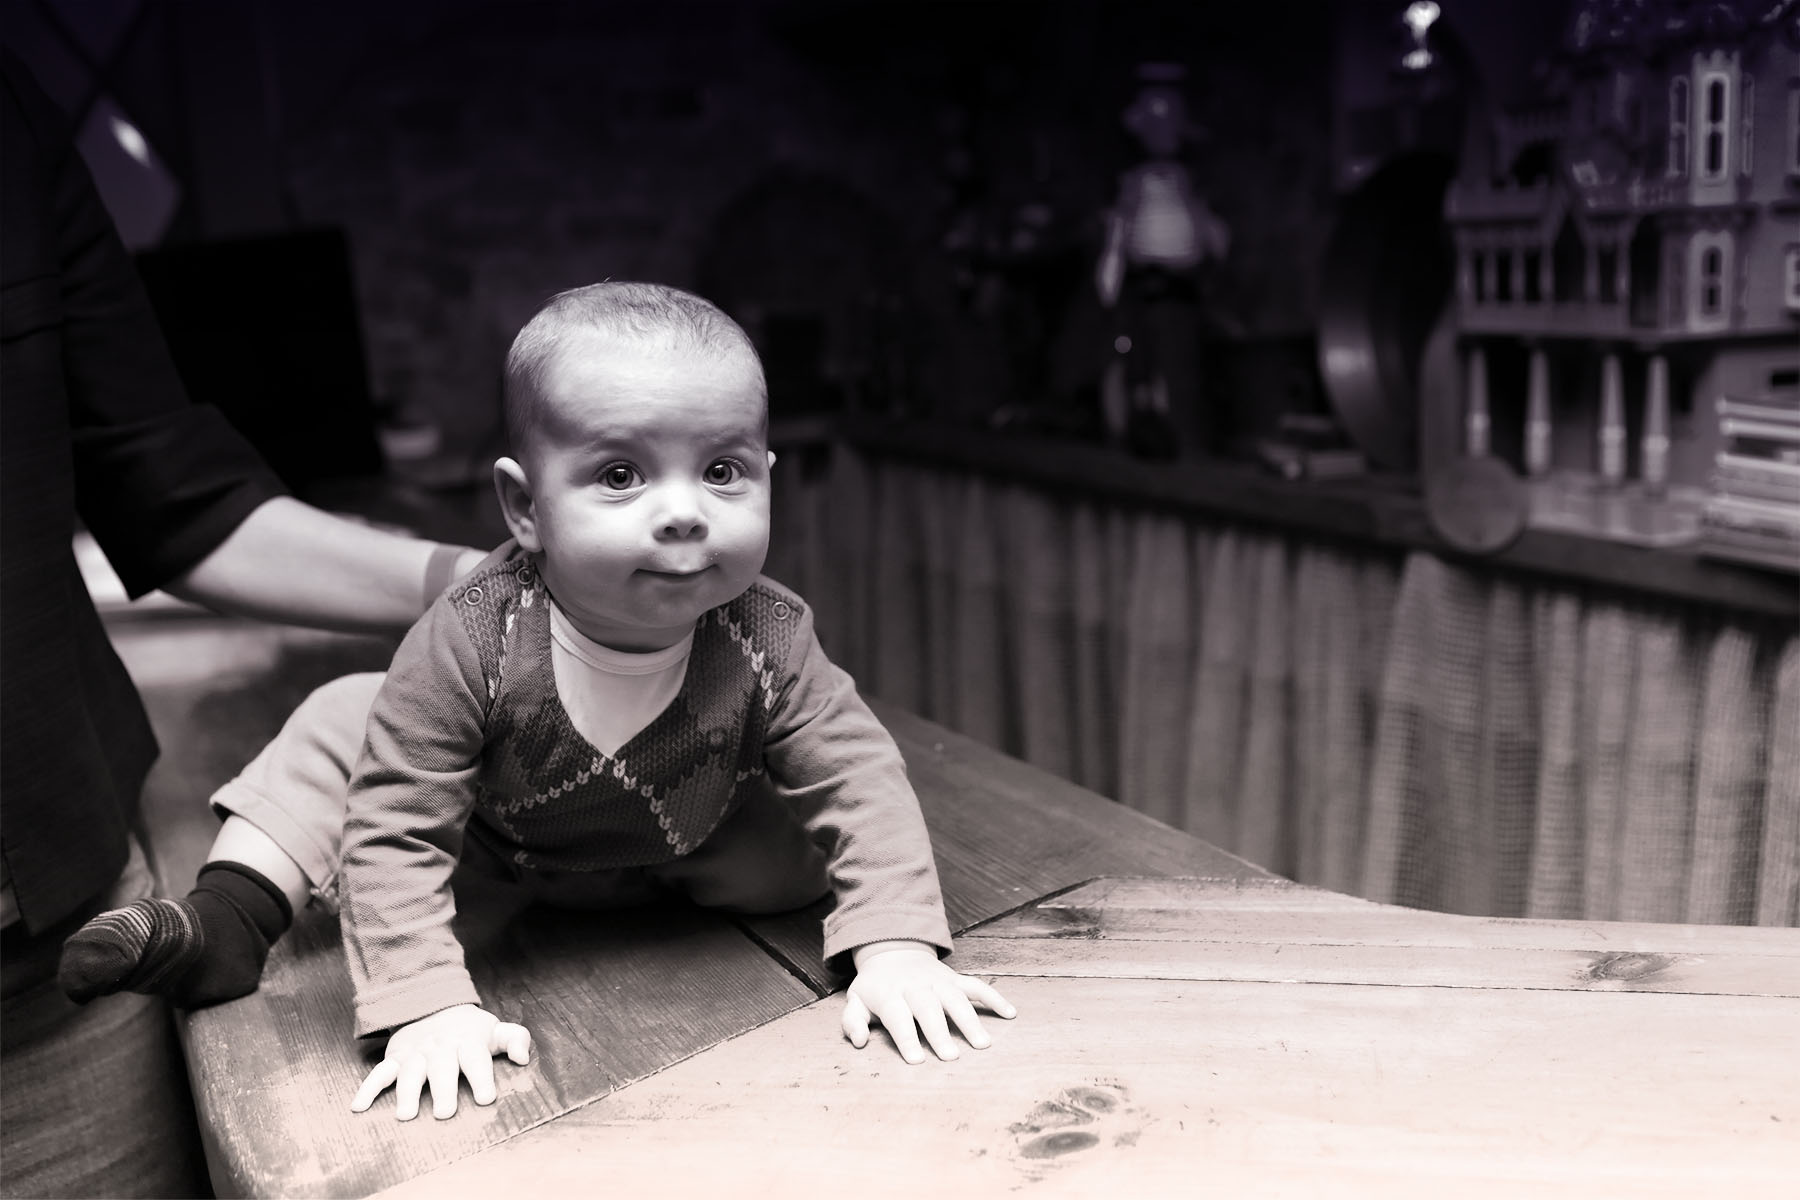 A black and white photo of a white baby in a long sleeve shirt, pants, and socks sitting on top of a wooden bar with hands stretched out and a parent's arm behind them.